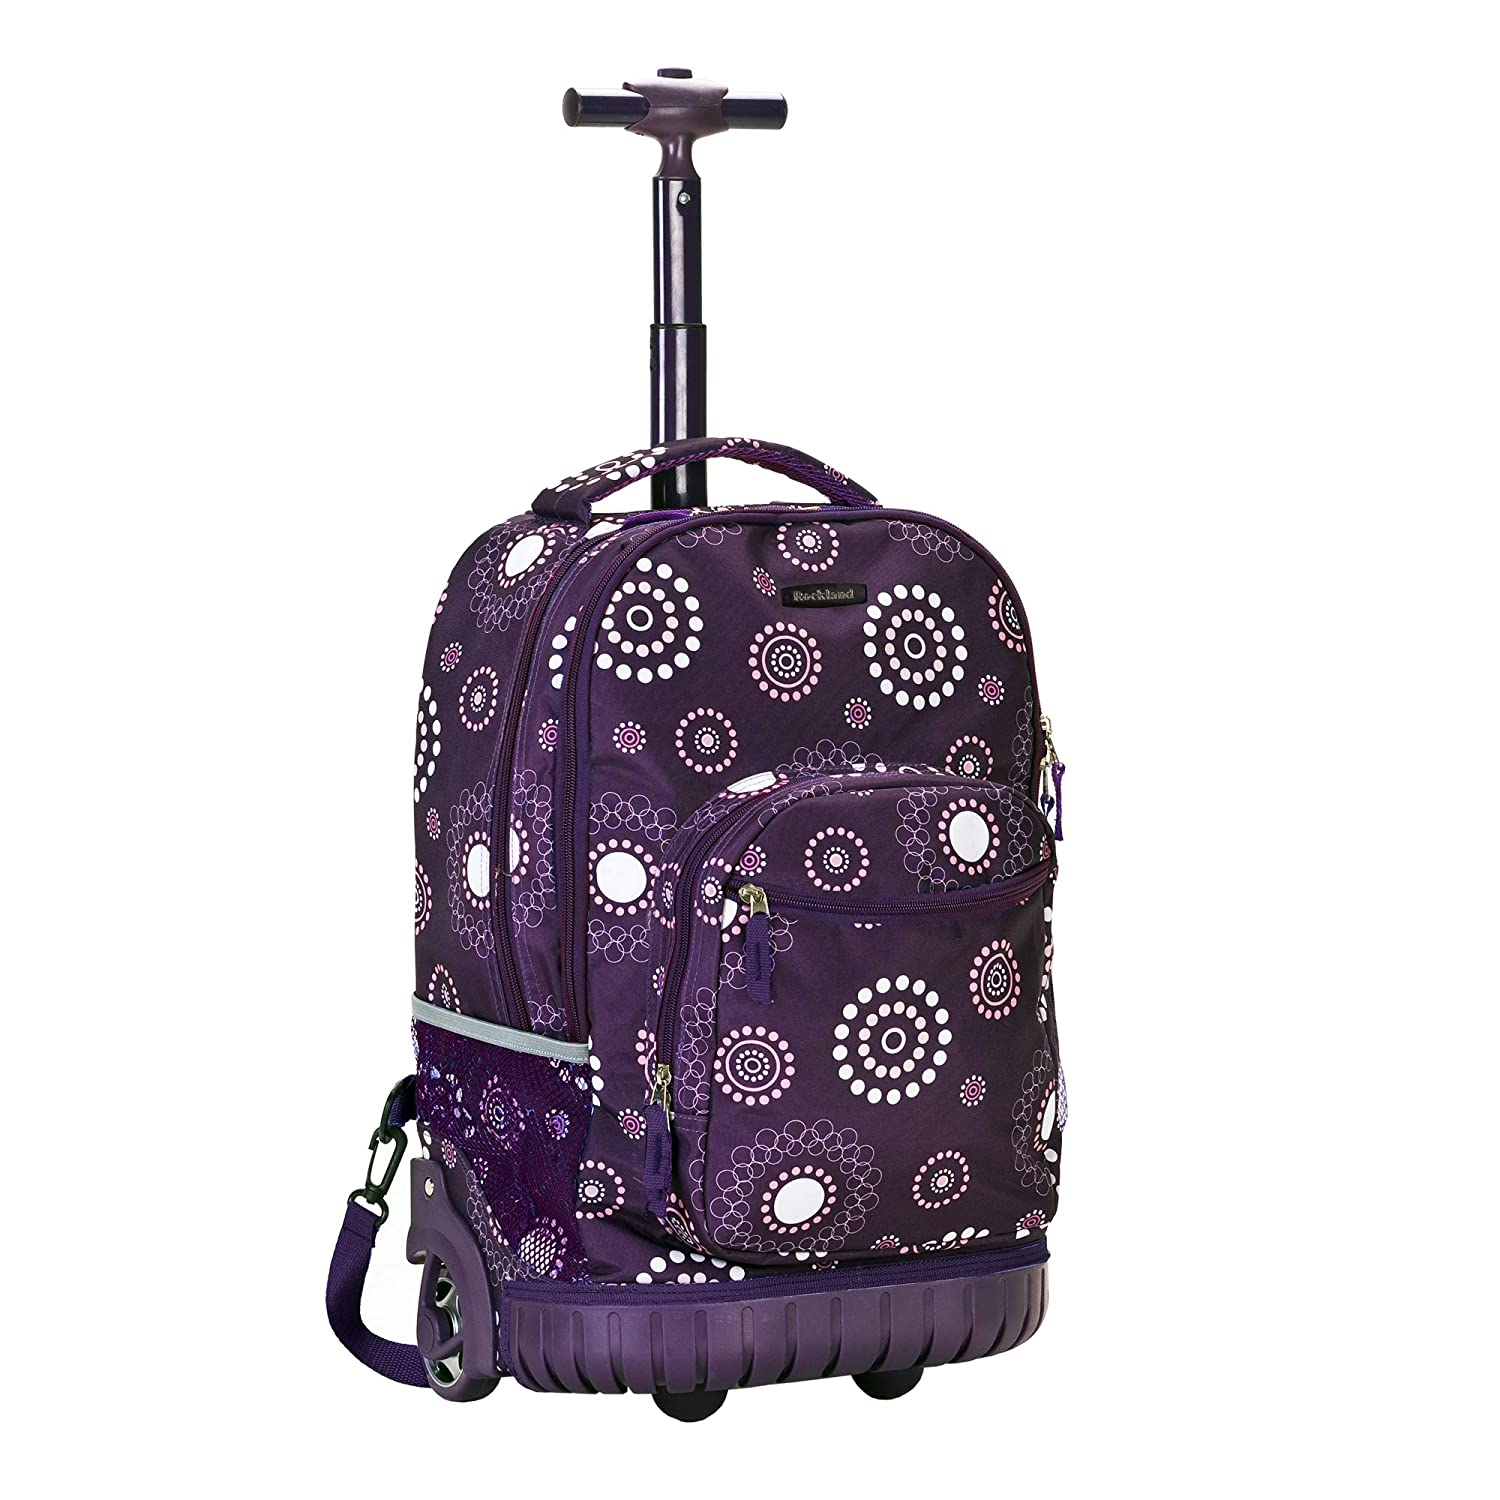 [ロックランド]Rockland Luggage 19 Inch Rolling Backpack Printed, Purple Pearl, Medium R02-PURPLEPEARL [並行輸入品] One Size Purple Pearl B005H9KVY4